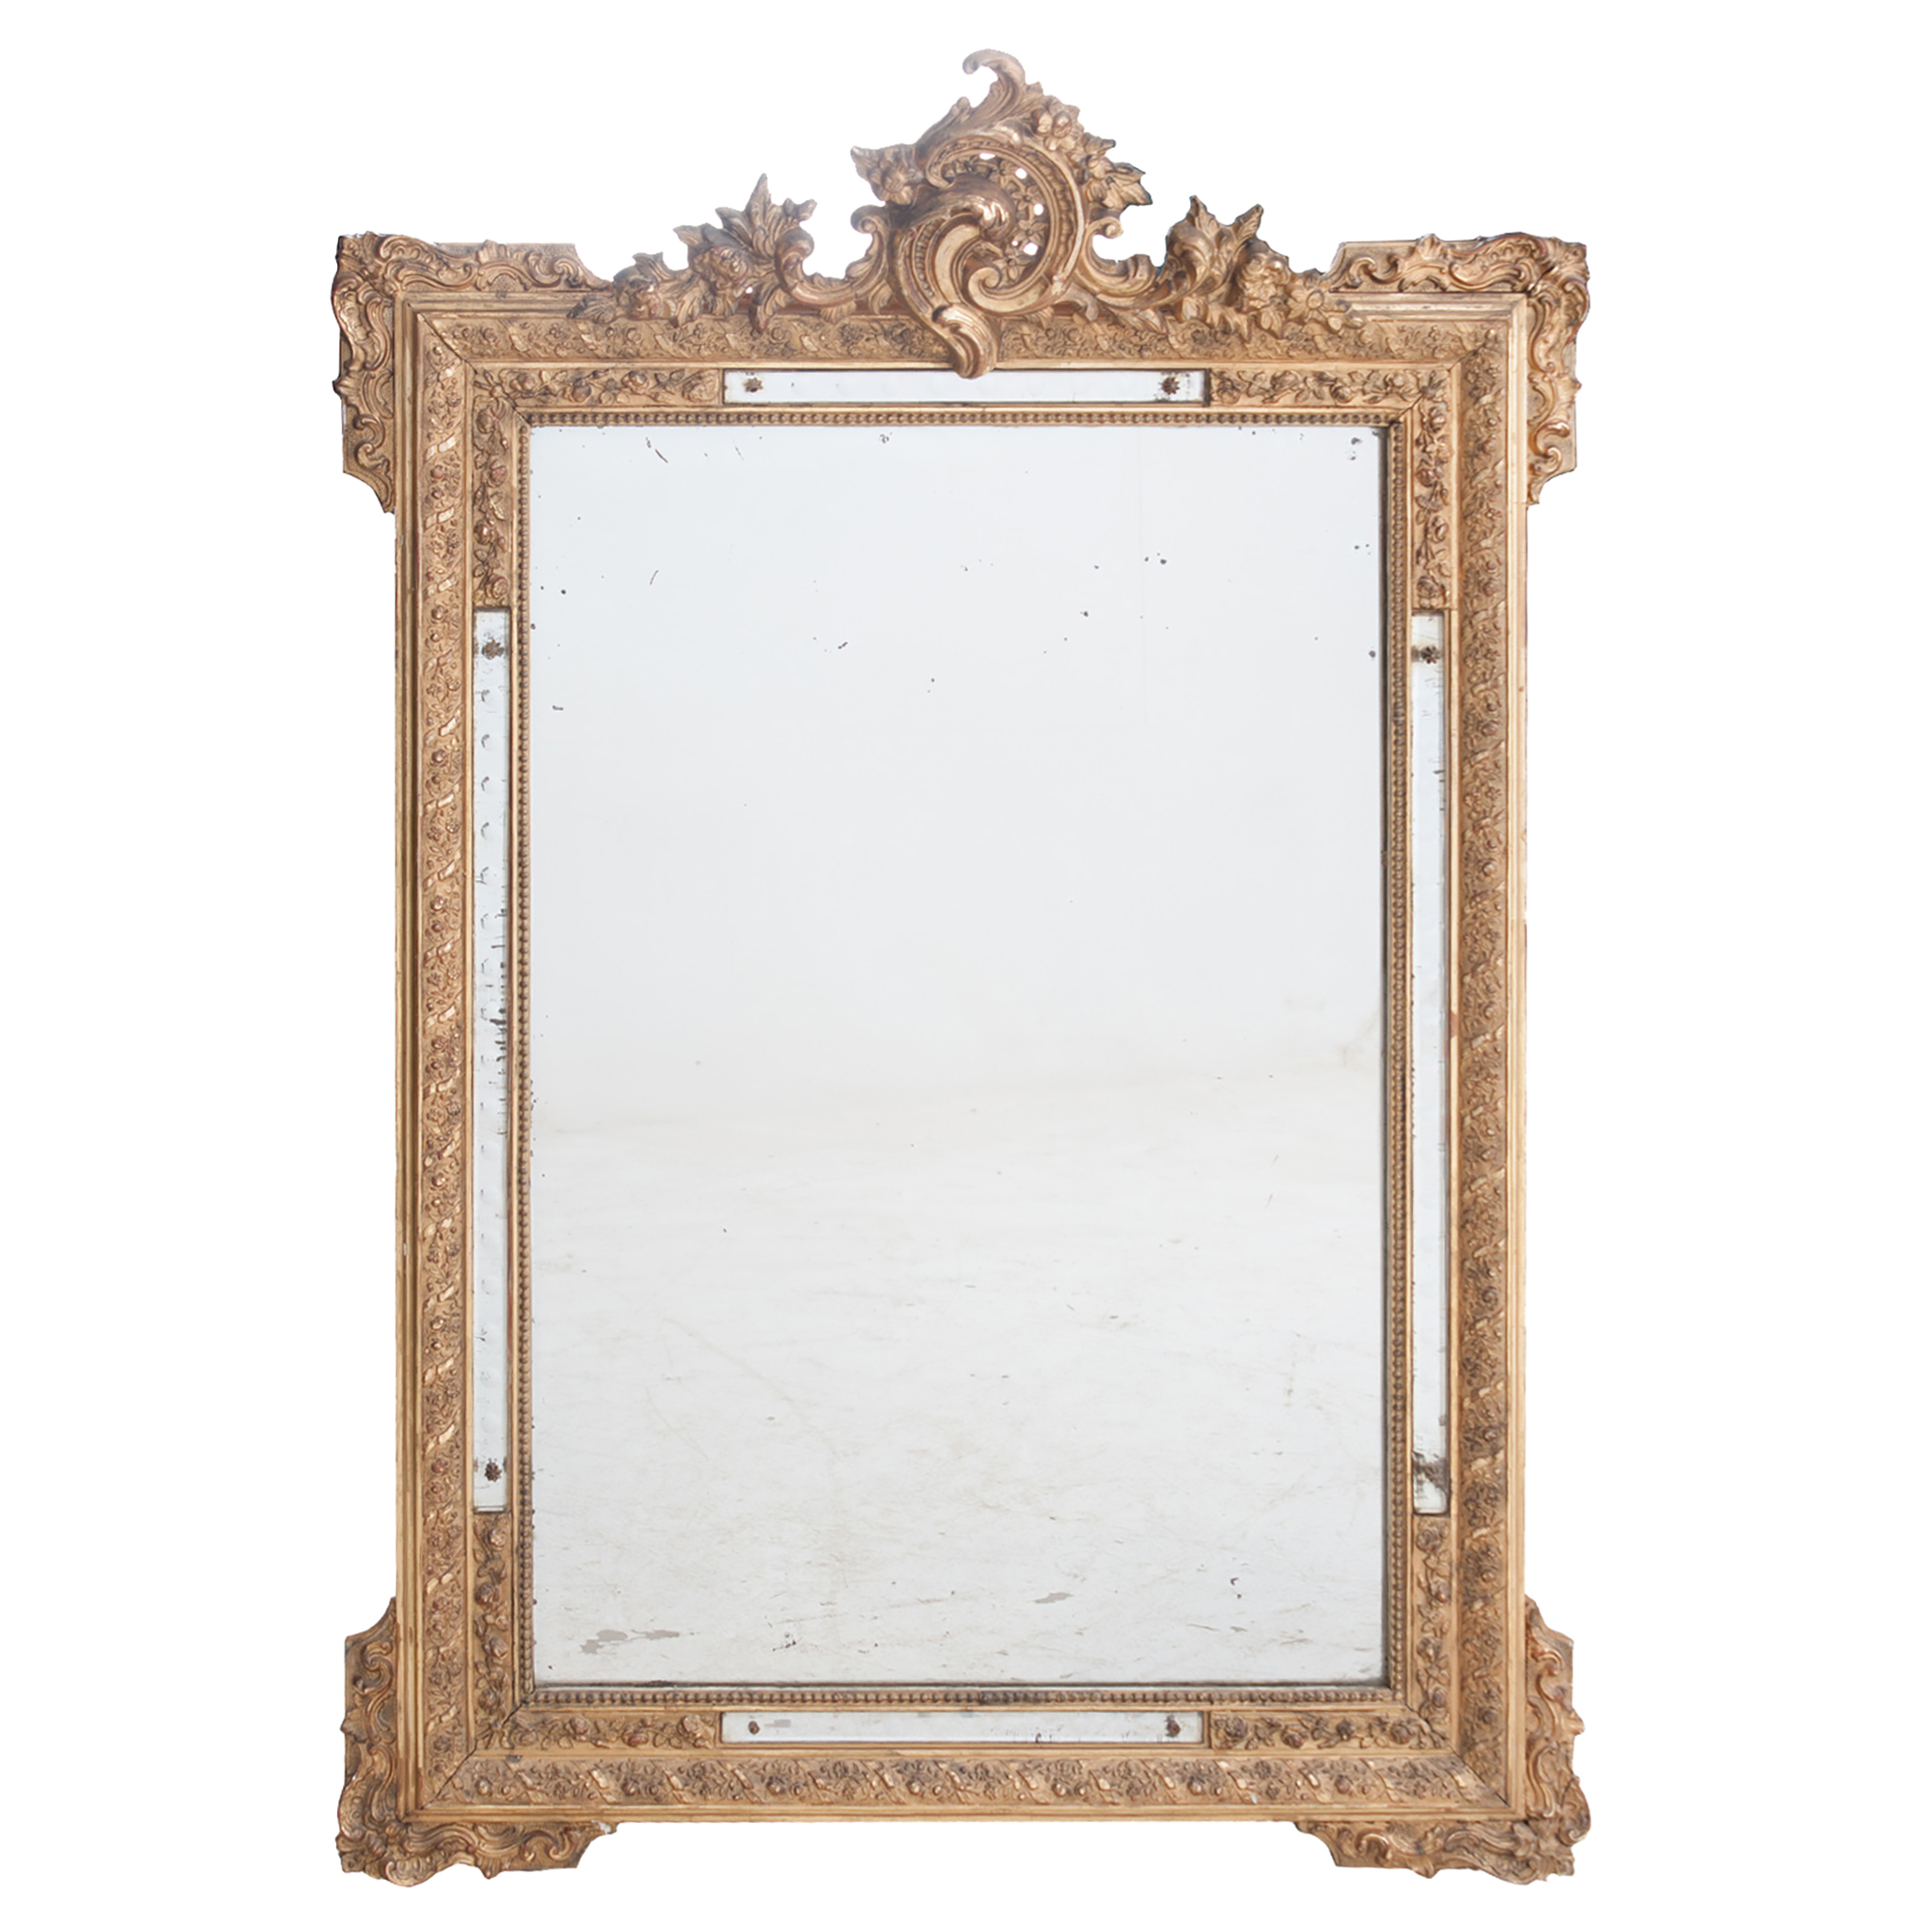 French 19th Century Rococo Style Gilt Mirror With Applique